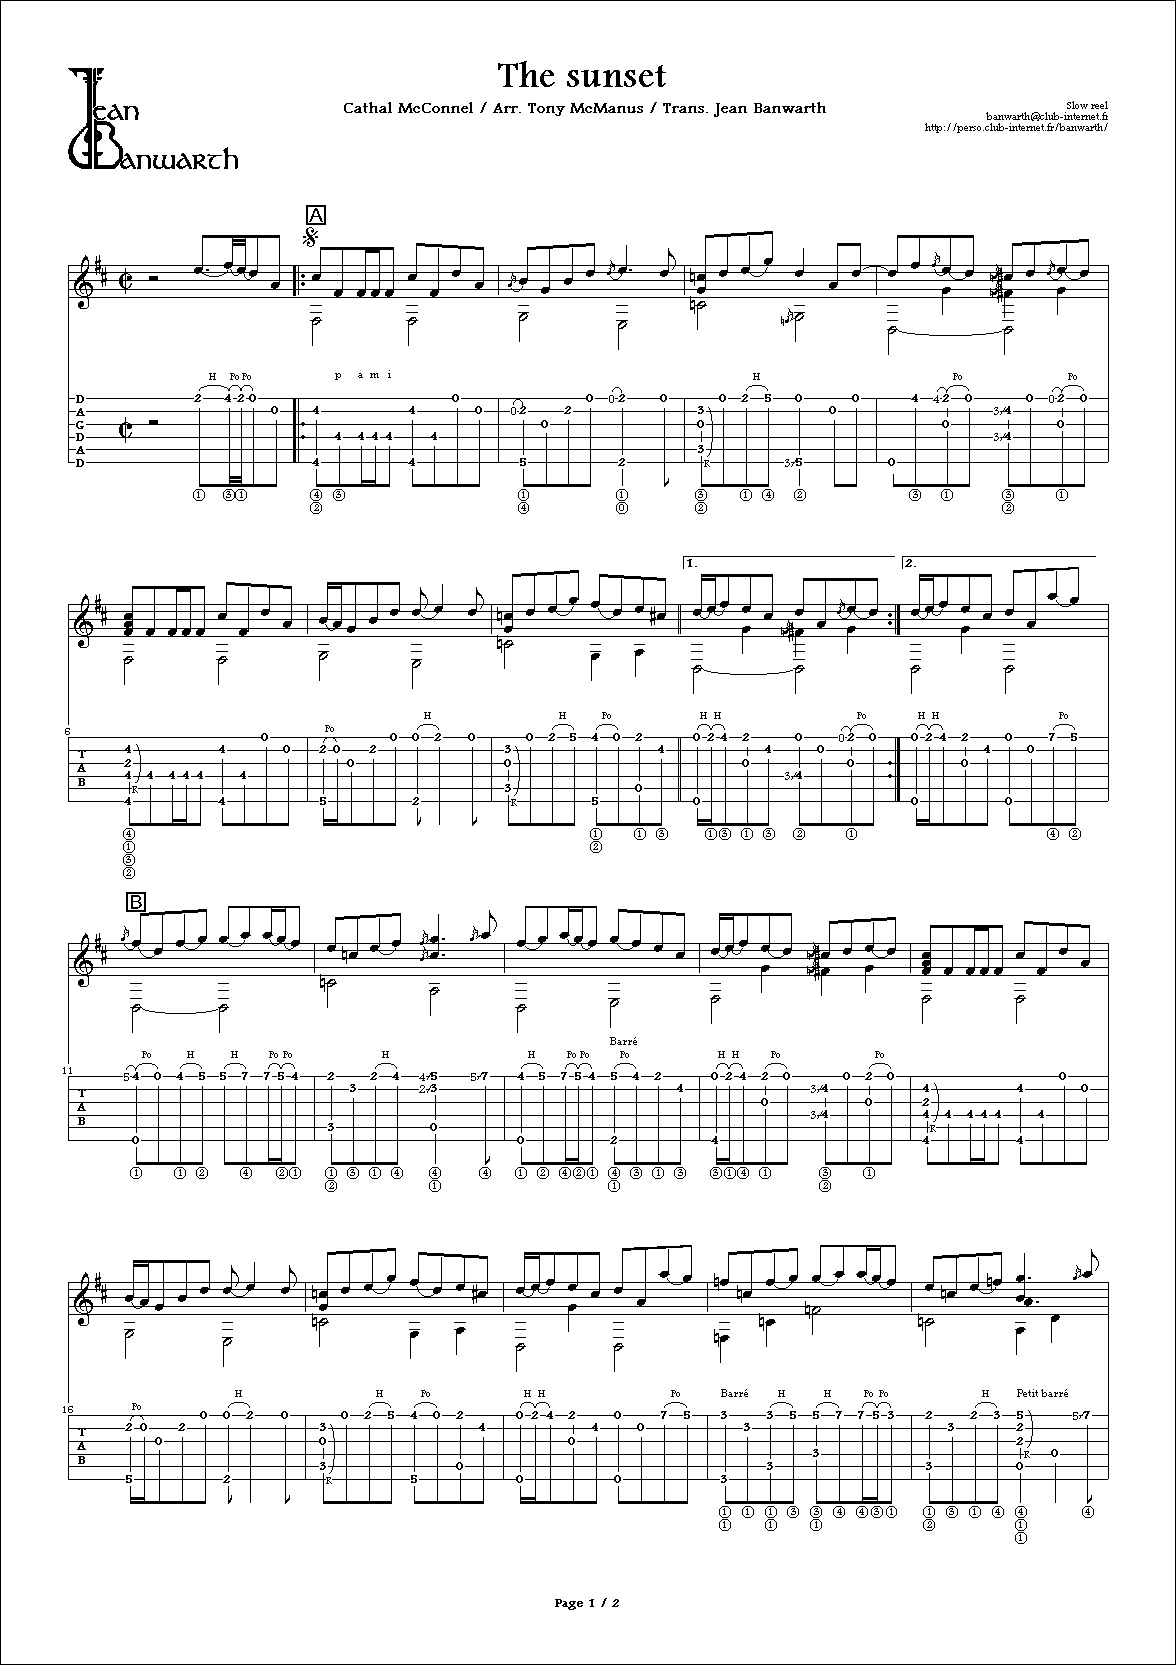 A drop in the ocean guitar chords images guitar chords examples irish guitar guitar difficulty difficulty page 1 of the sunsets jpg picture fatherlandz images hexwebz Image collections